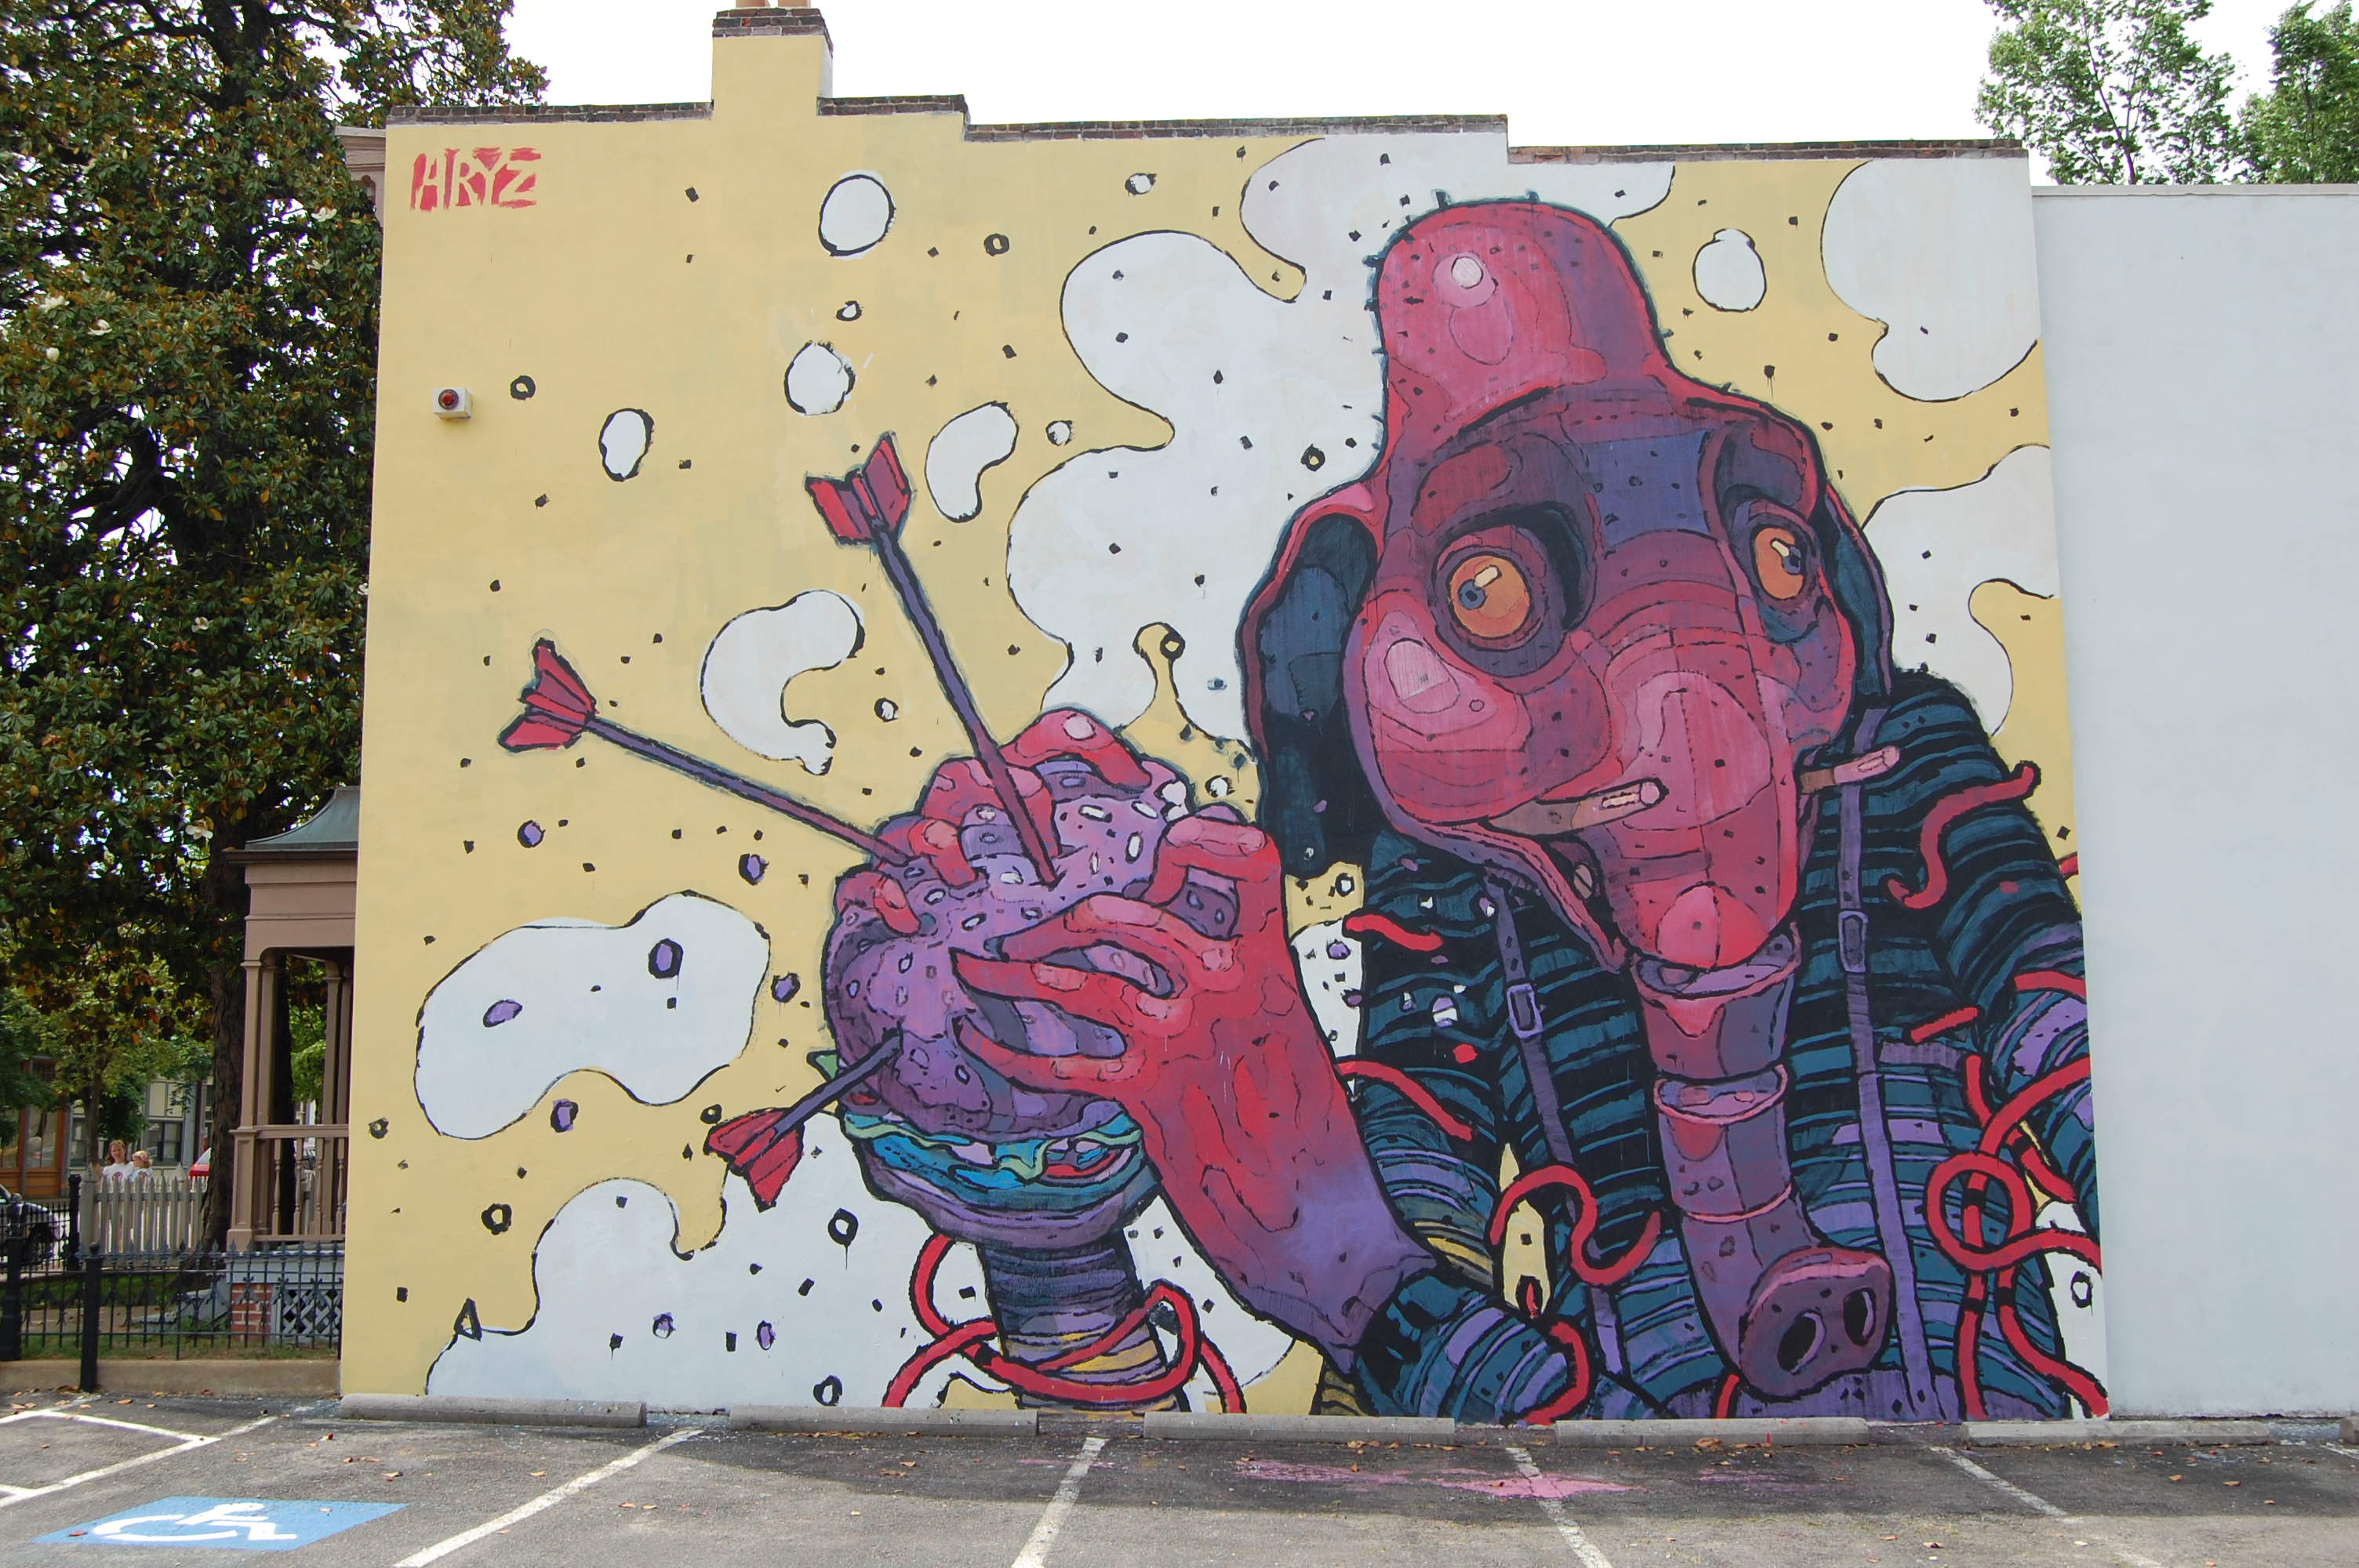 Ilustradores trabajando. - Página 3 A-grahpic-style-elephant-man-clutches-a-hamburger-in-this-street-ar-mural-by-graffiti-artist-Aryz